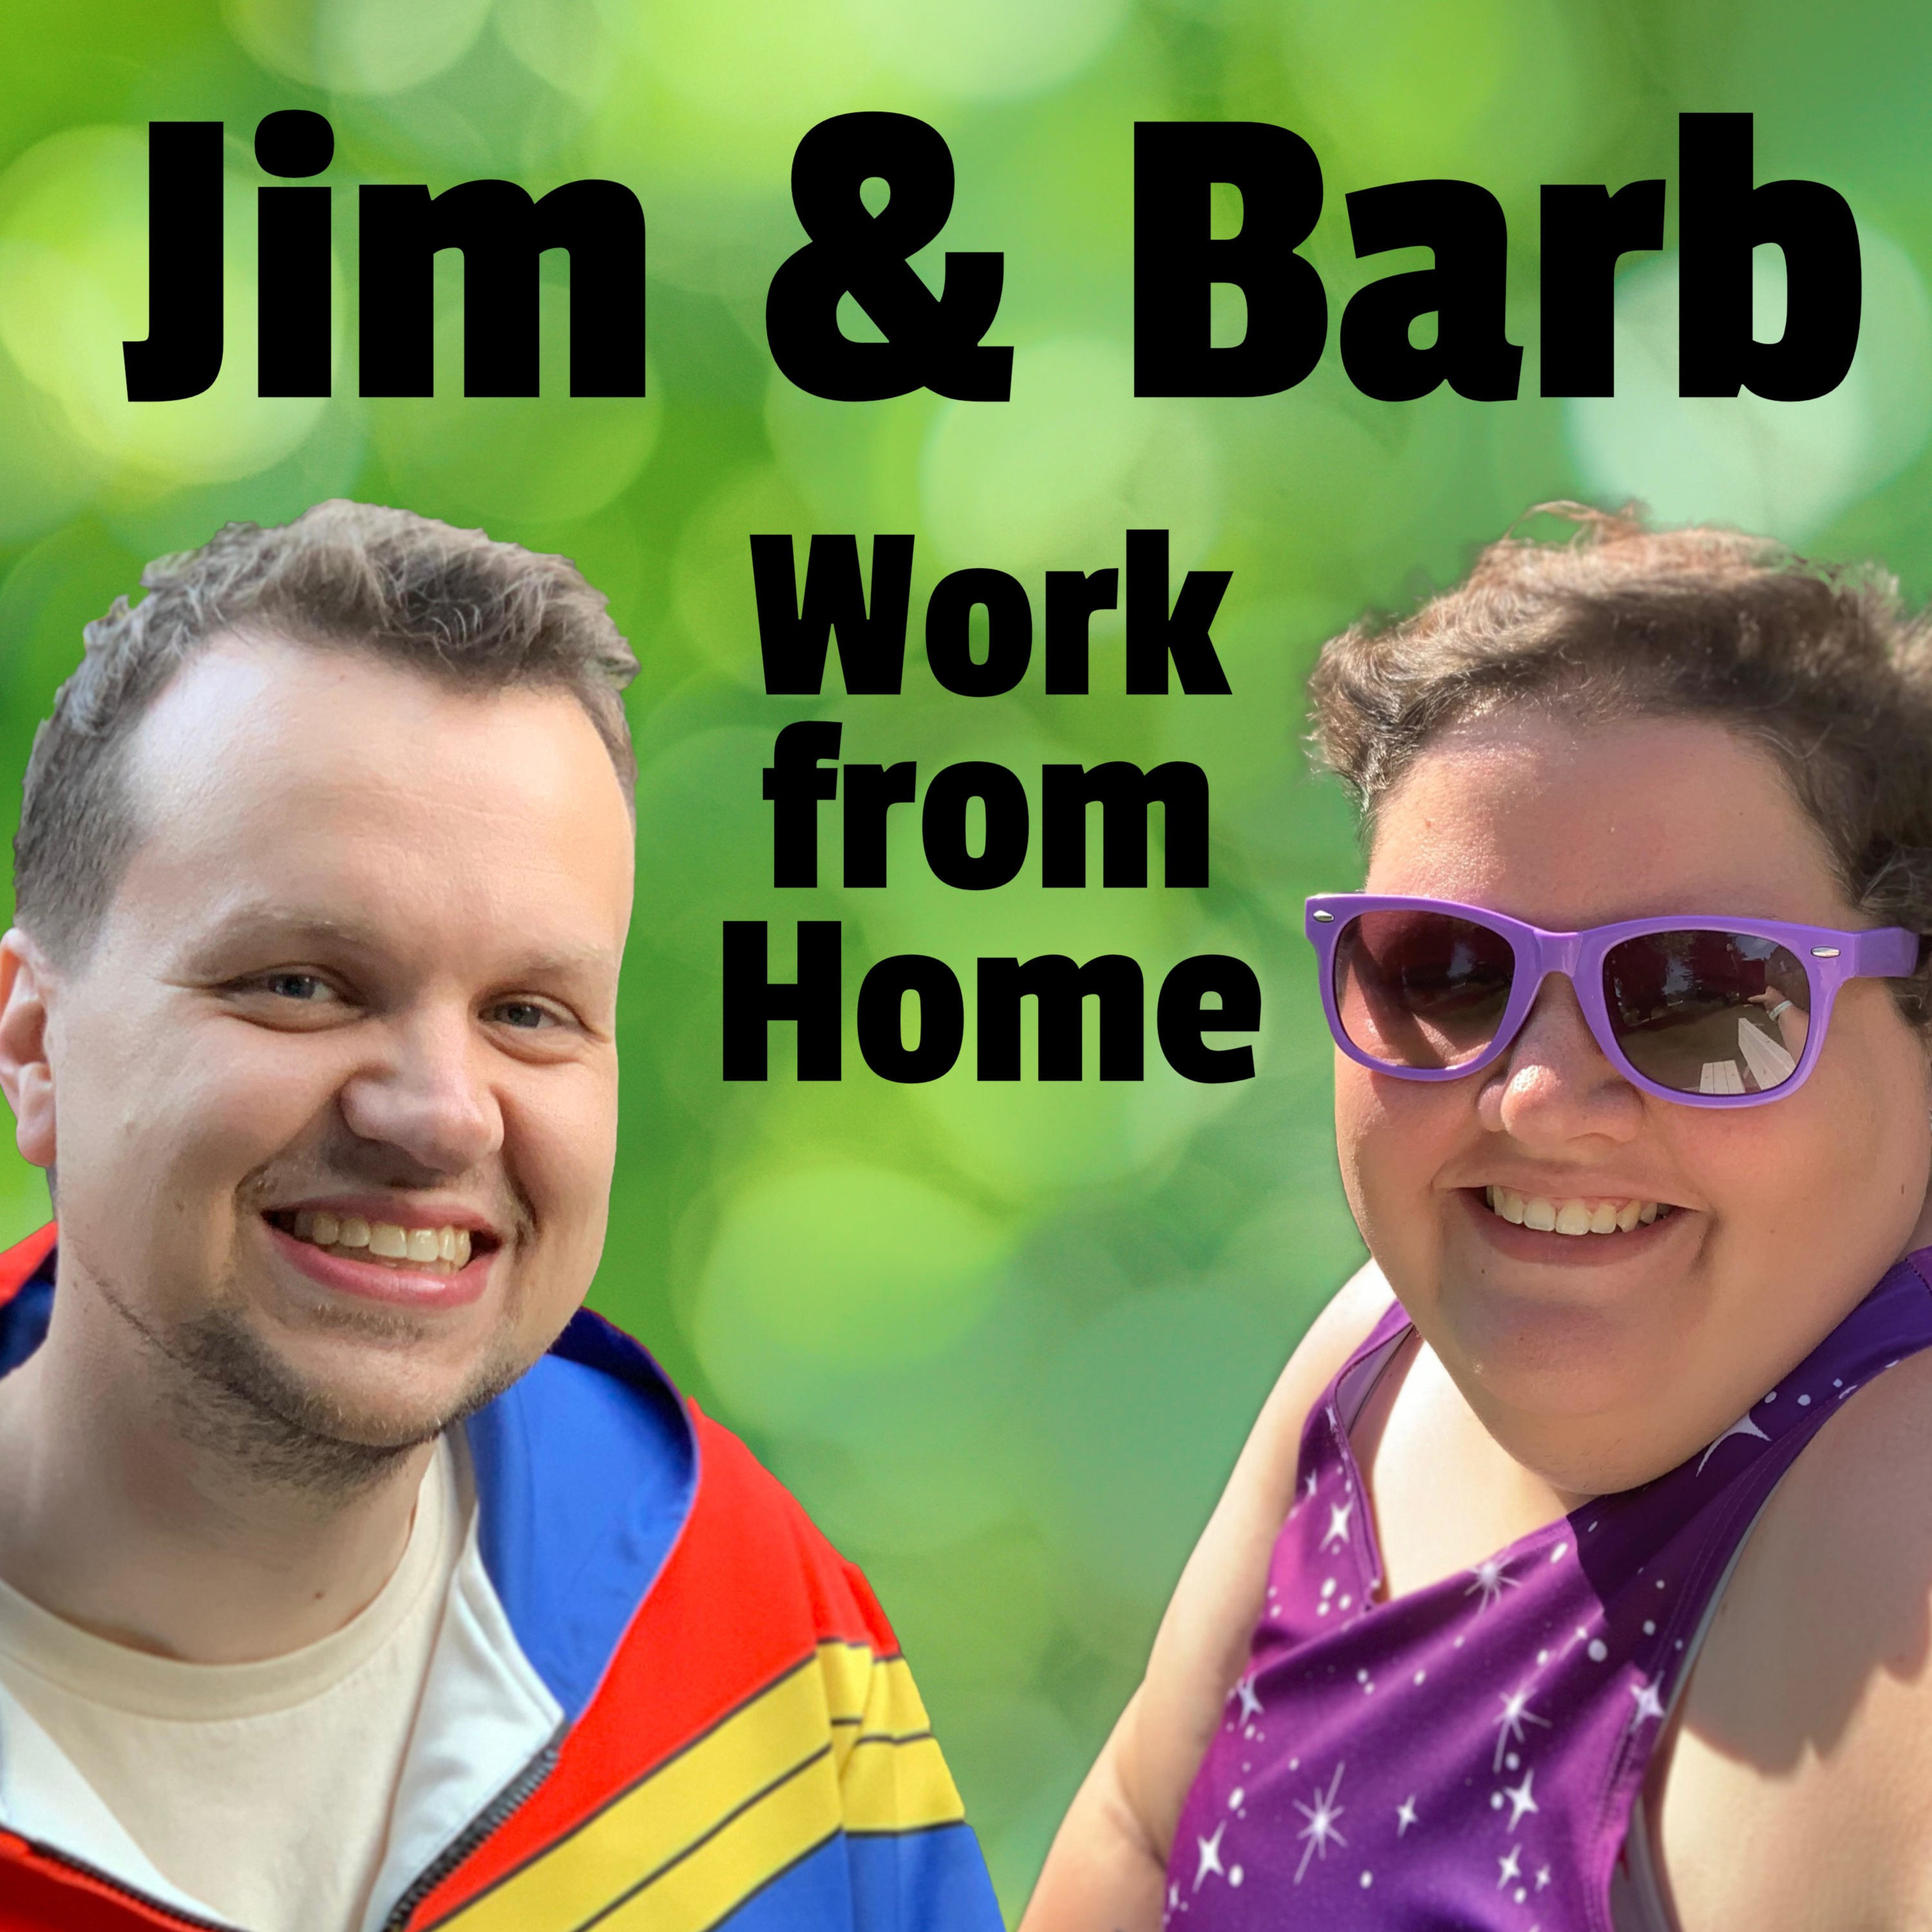 Jim and Barb Work From Home